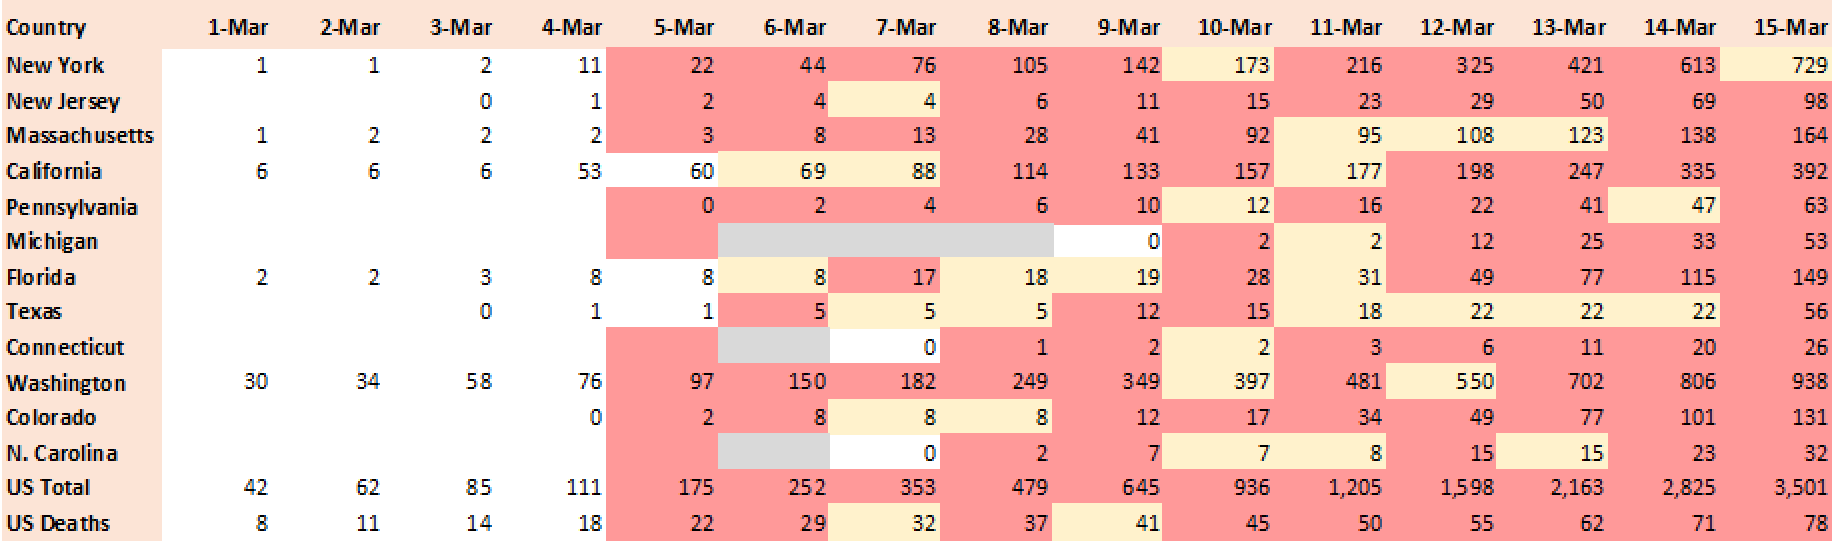 Actual cases period 01-Mar-2020 to 15-Mar-2020